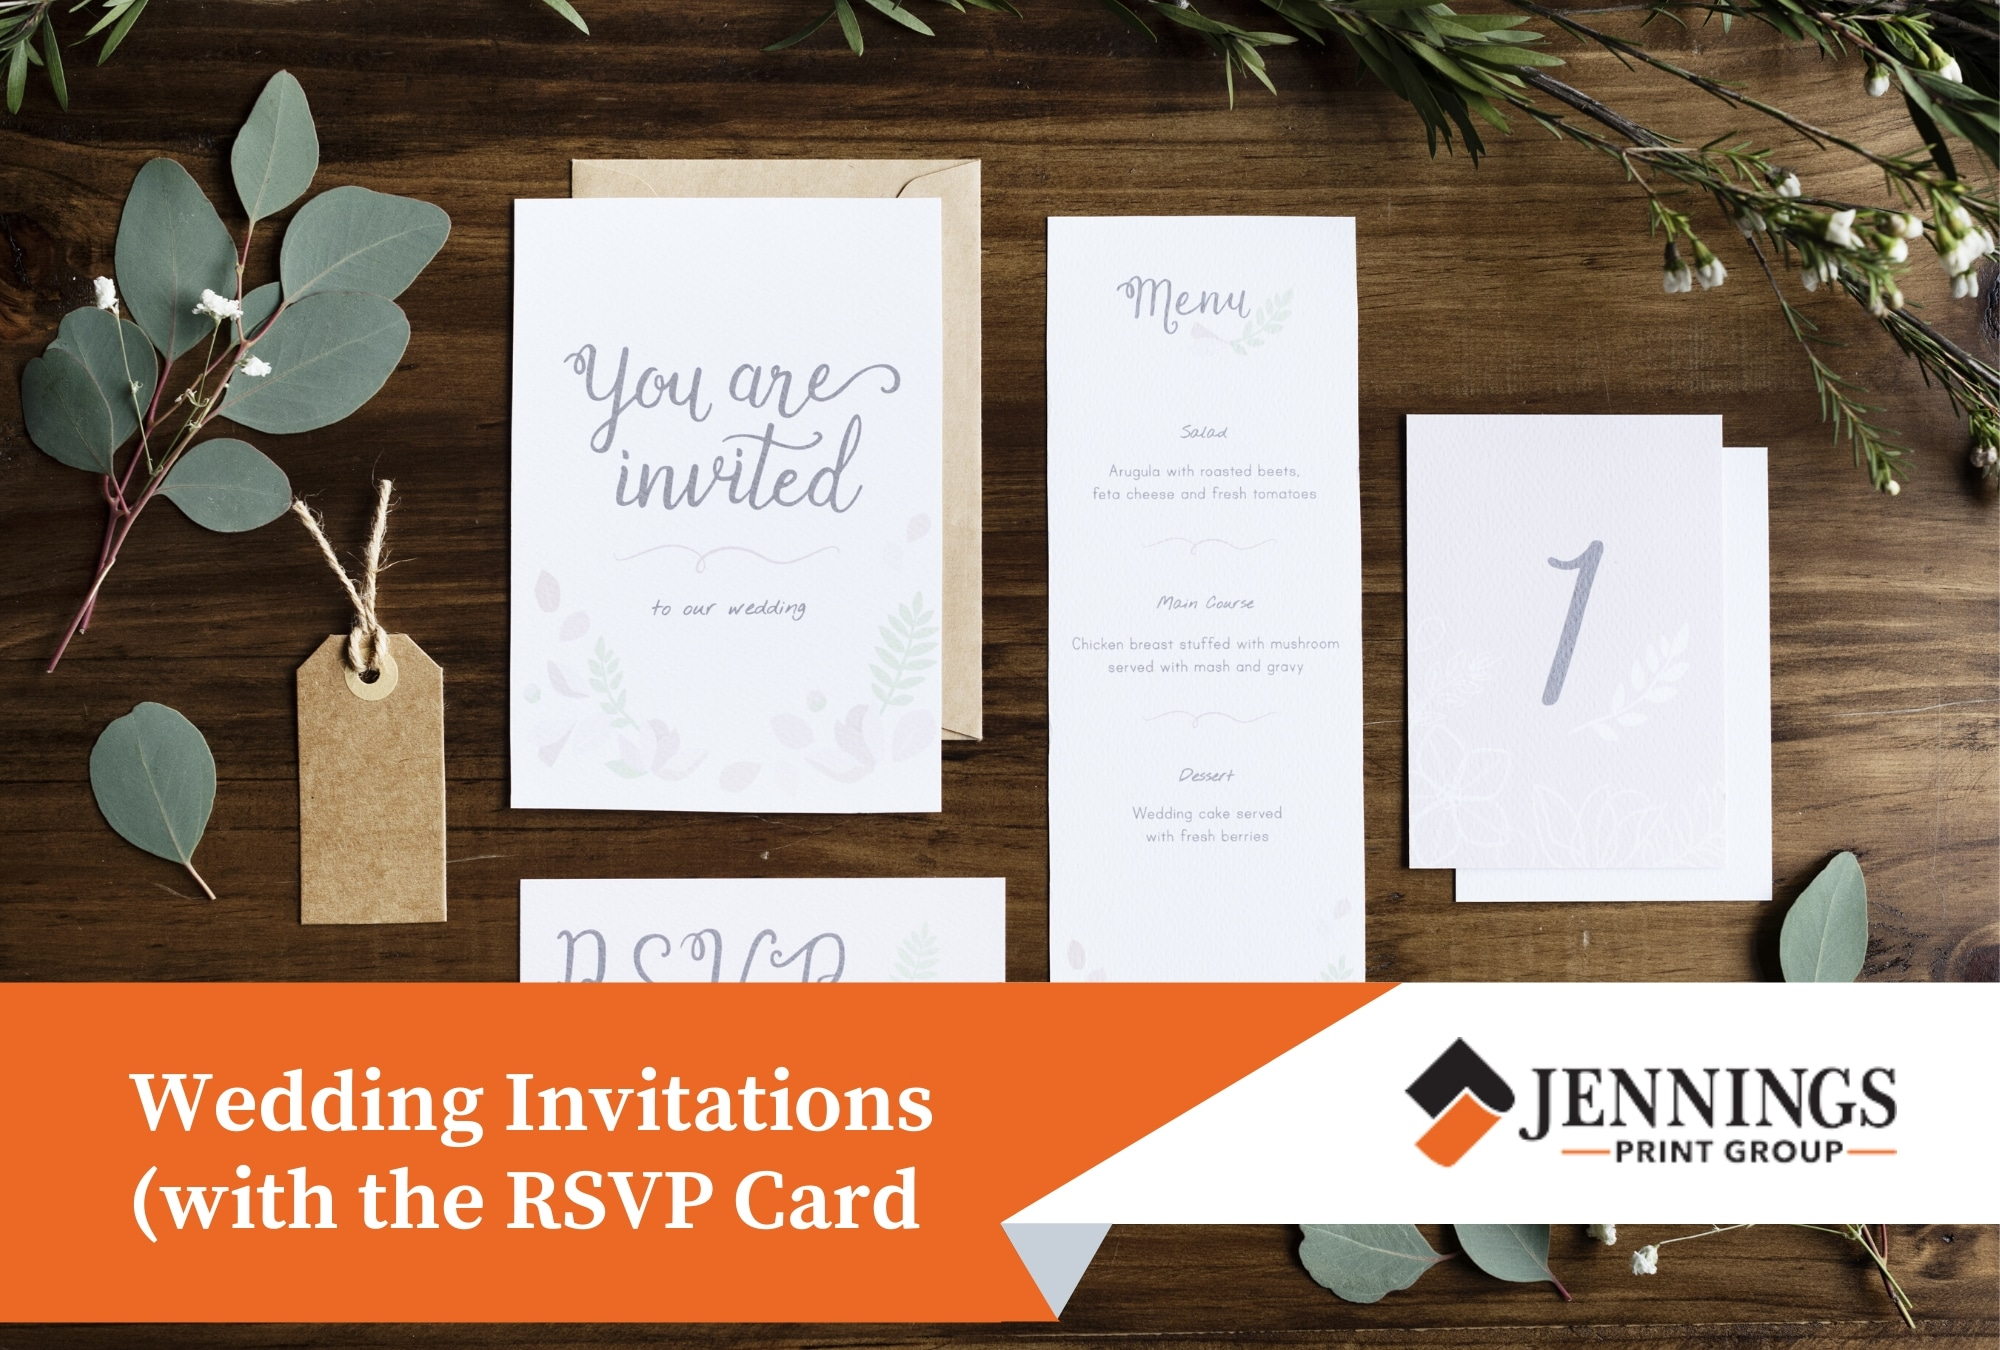 Wedding Invitation card with RSVP